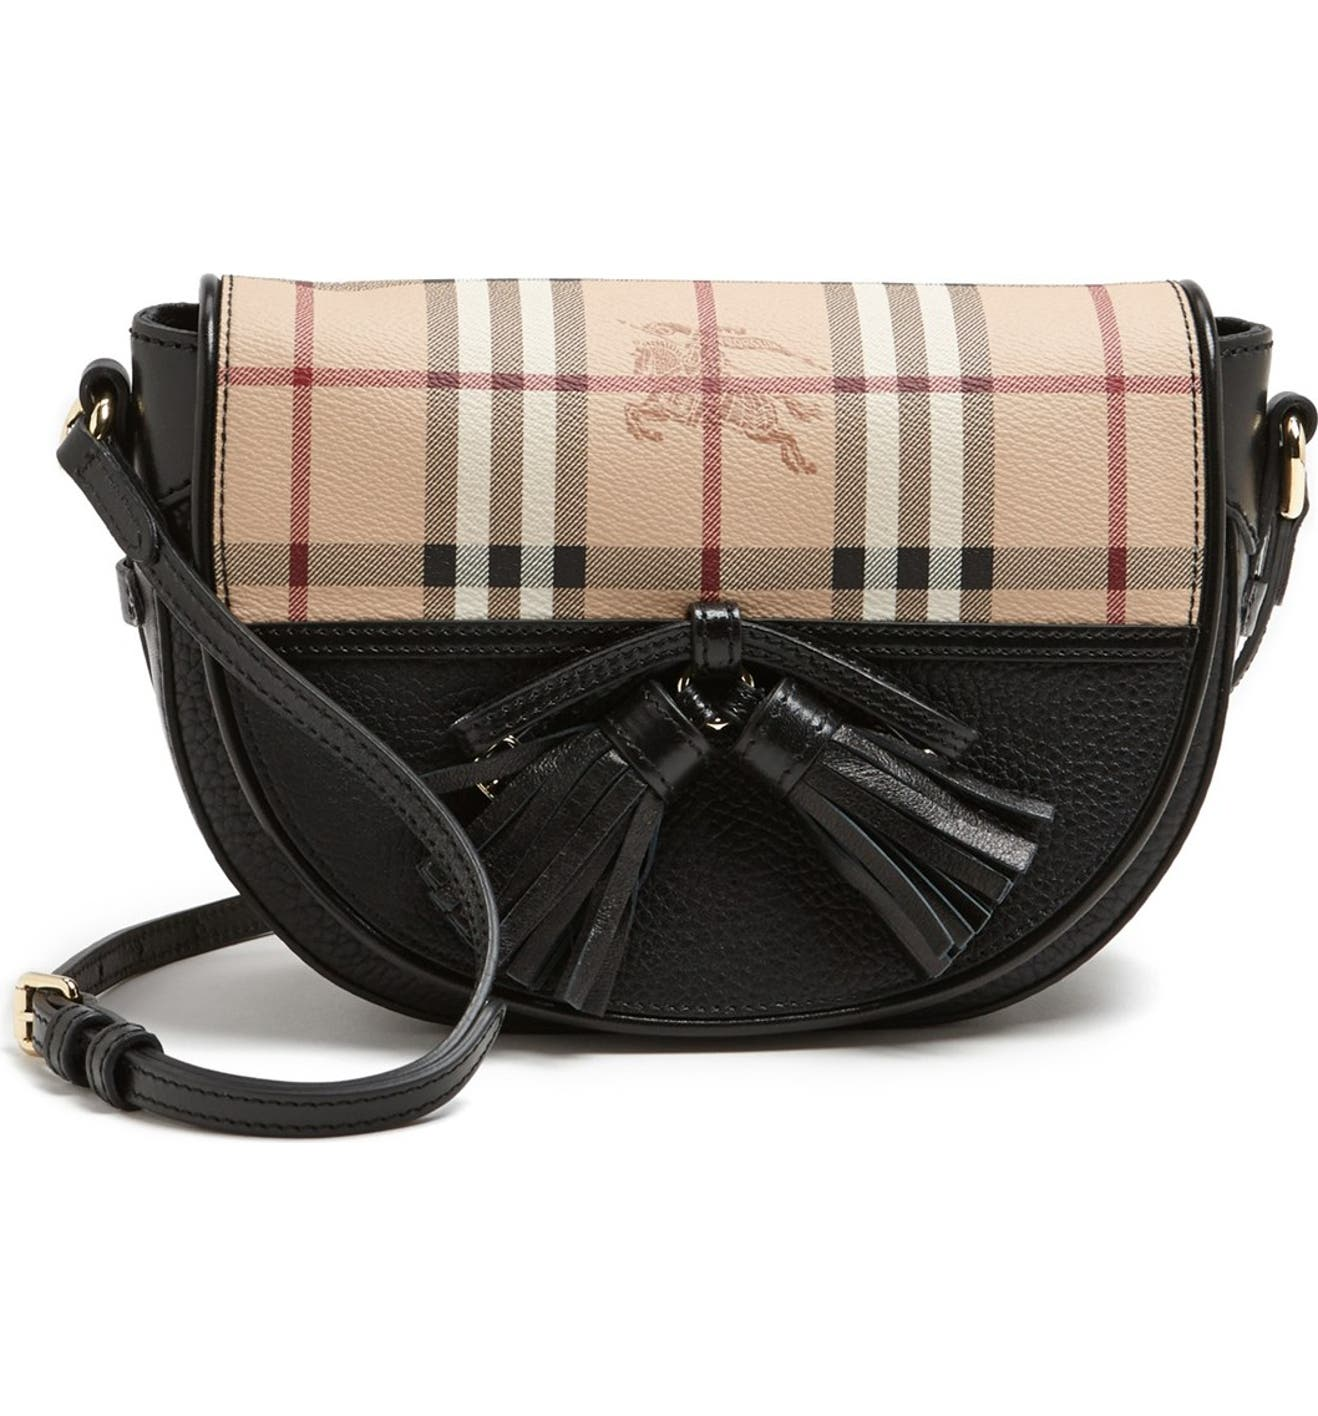 7956eee96d21 Burberry  Small Maydown  Leather Crossbody Bag